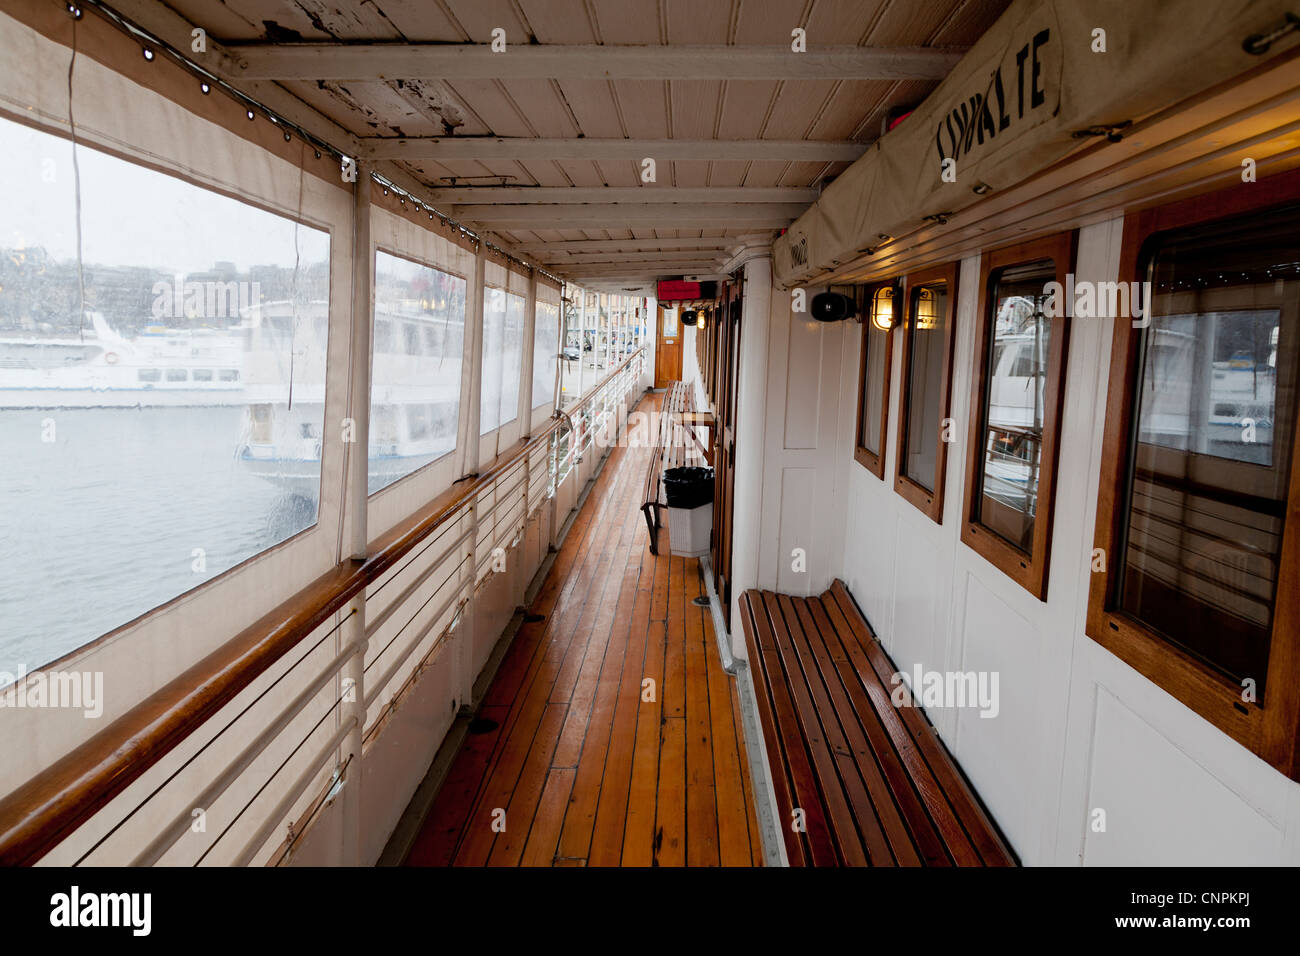 Waxholm III, a boat providing tours in and around the archipelago near Stockholm Sweden. - Stock Image